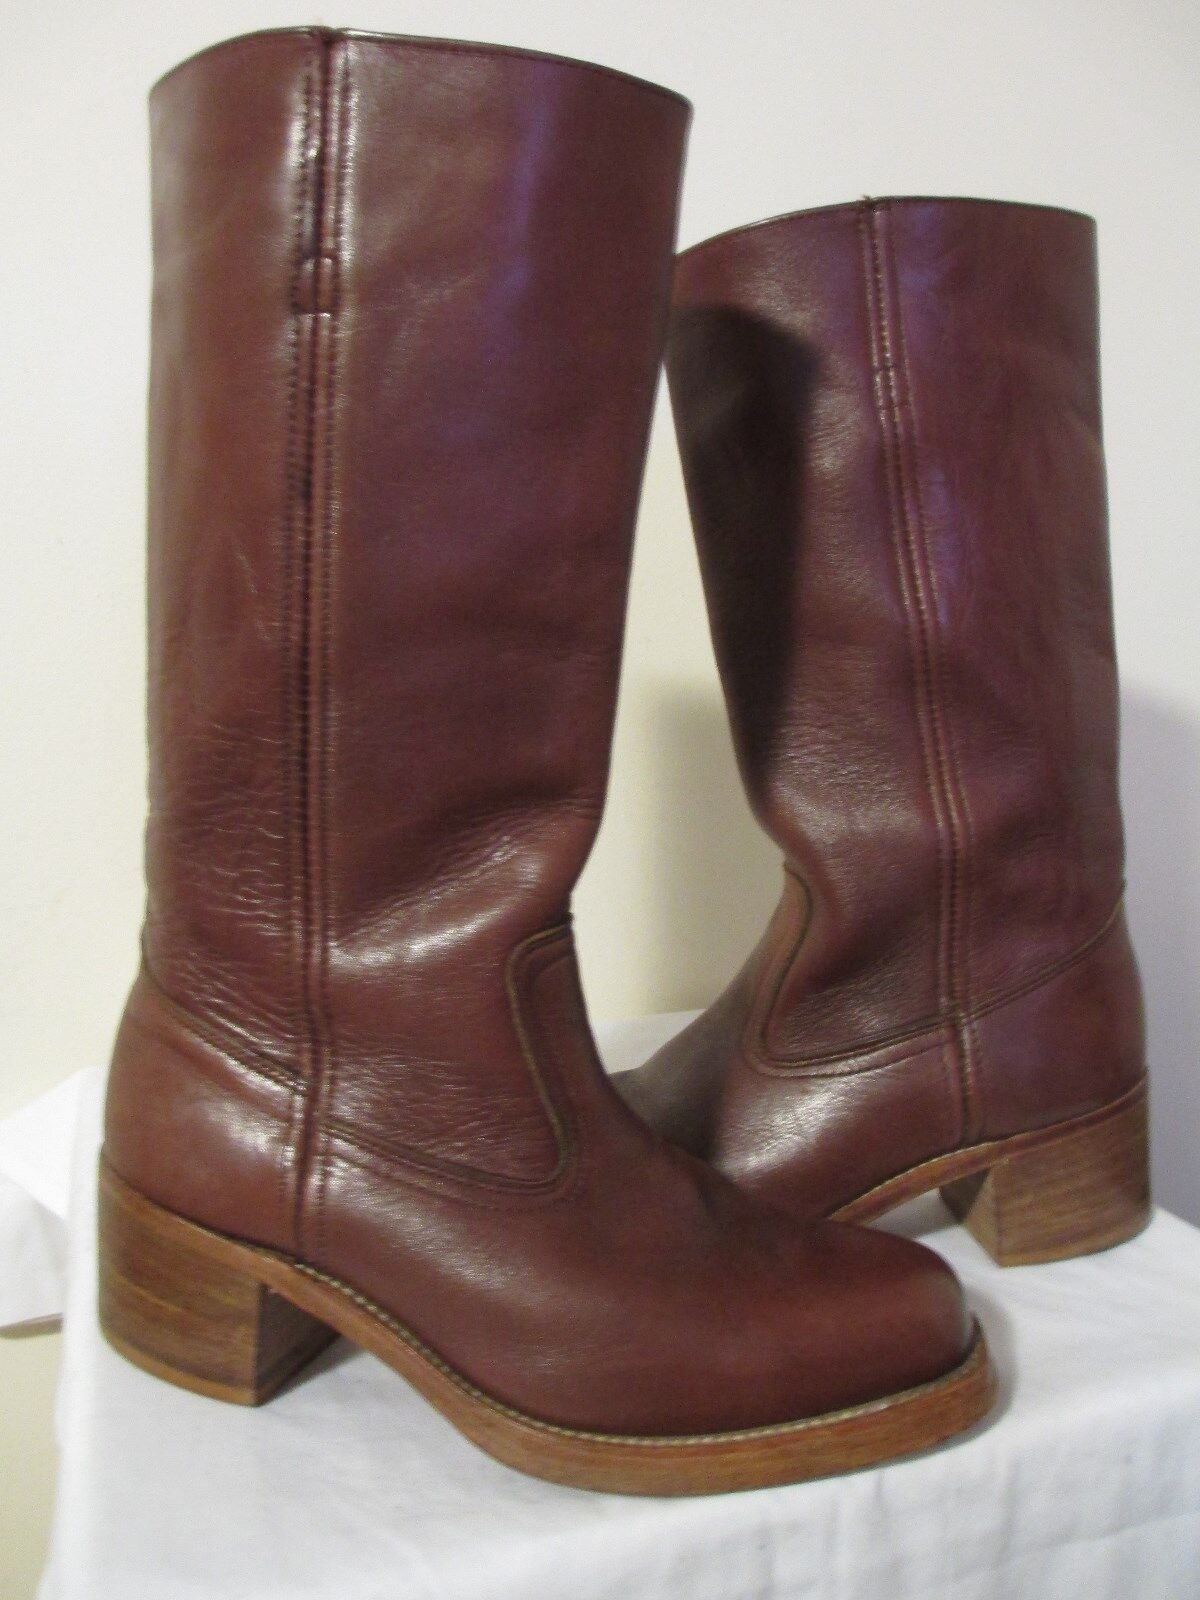 DEXTER Damens's Braun Leder Knee-High Stiefel Größe 9.5 WW Made in USA